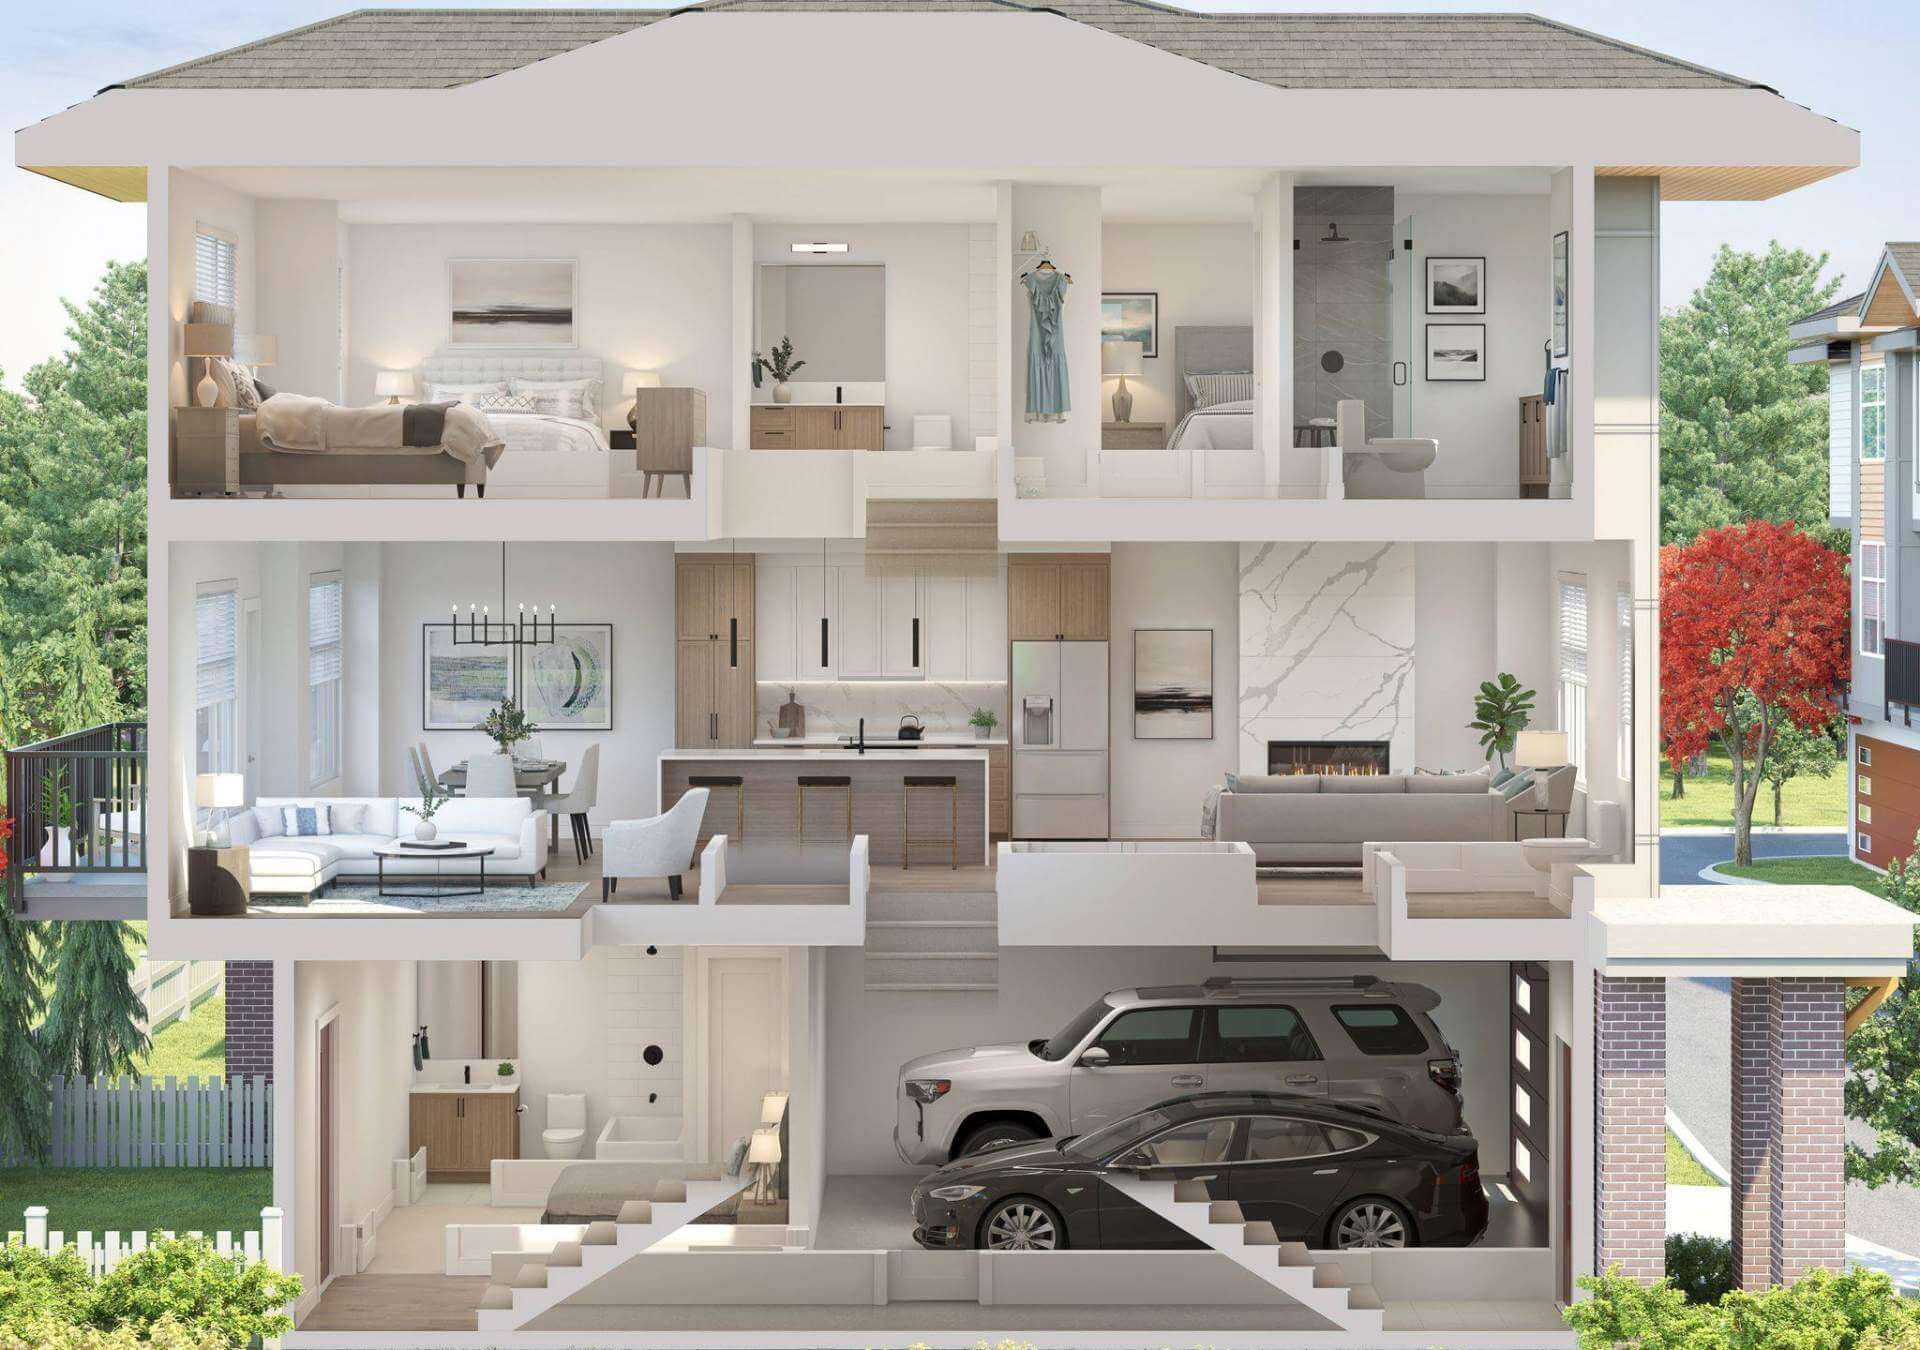 Rendering Of Crofton Townhomes - Dollhouse Layout